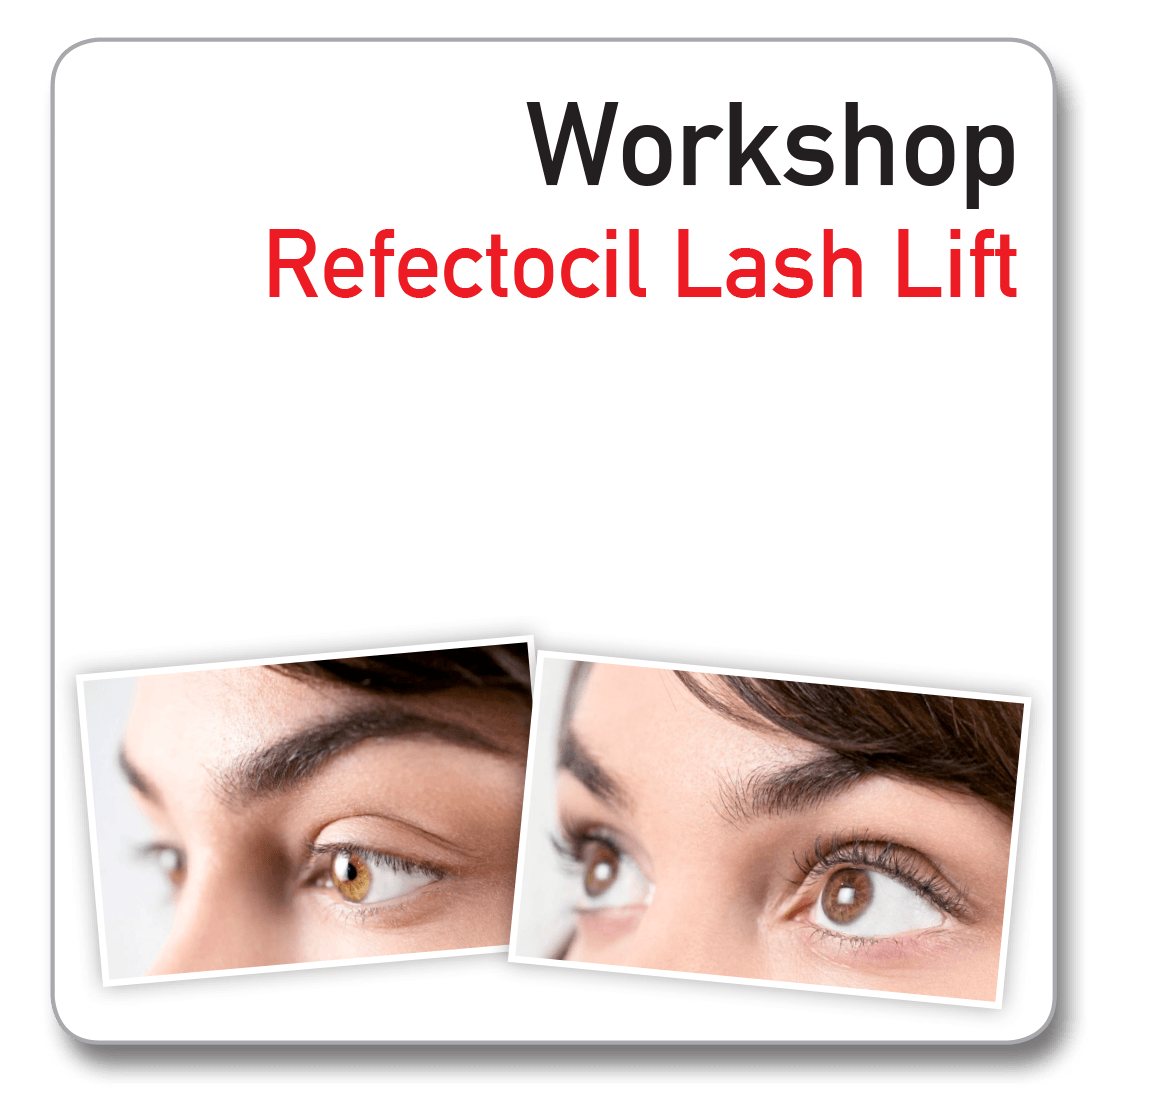 Workshop Refectocil lash Lift